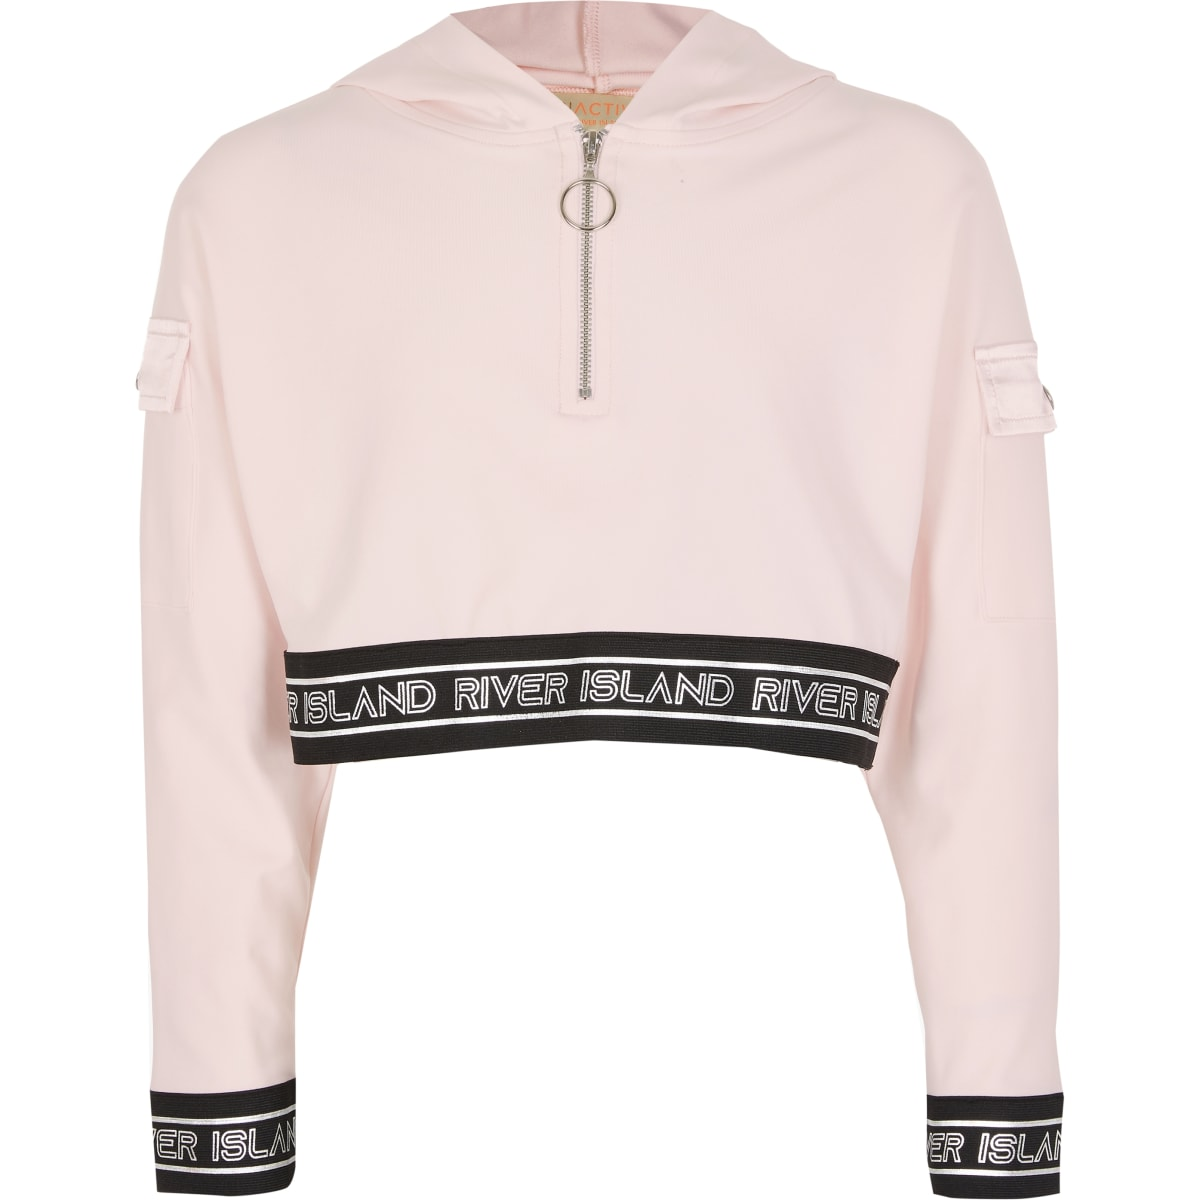 Girls RI Active pink sweatshirt outfit